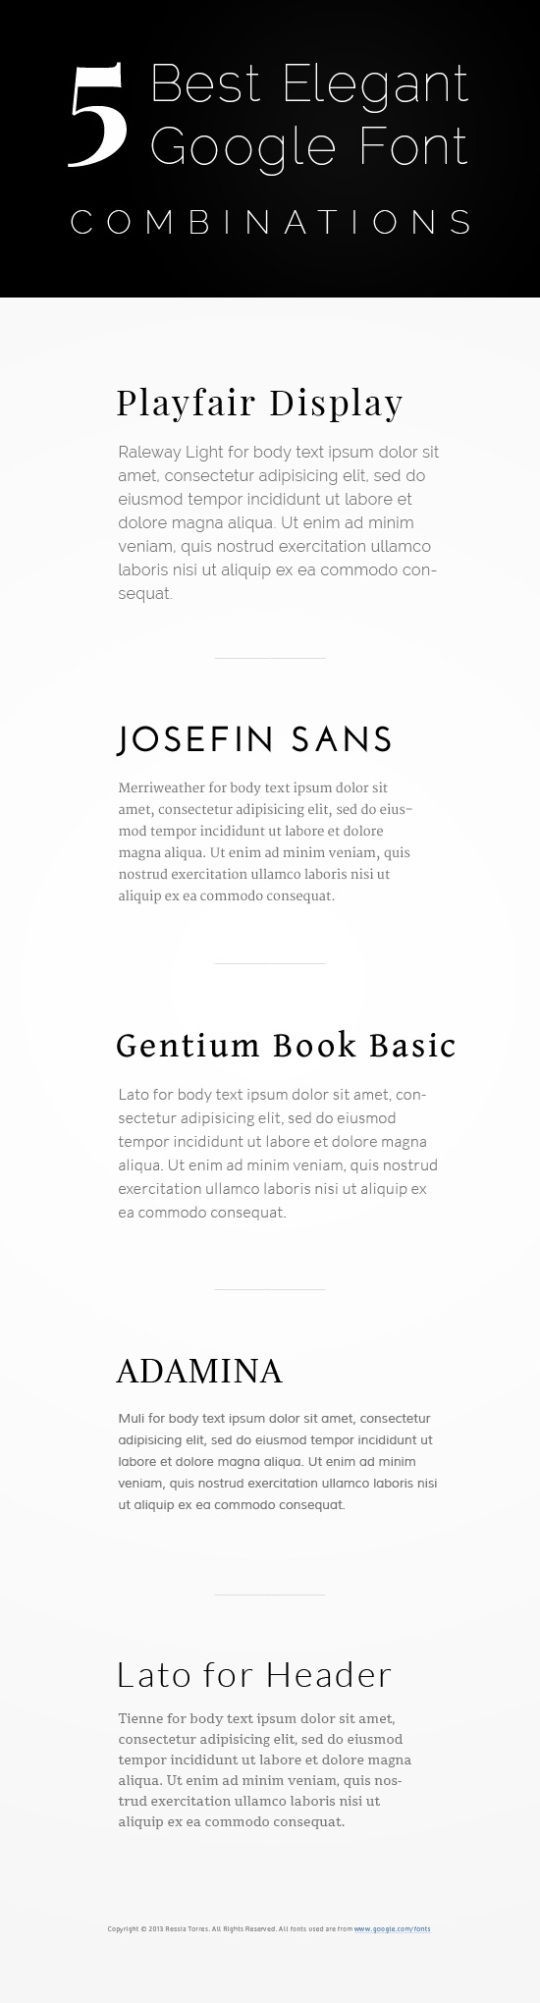 5 Best Elegant Google Font Combinations. The nice thing about Google fonts are that they are already web-ready and you don't have to host them yourself! Just add a link in your CSS.